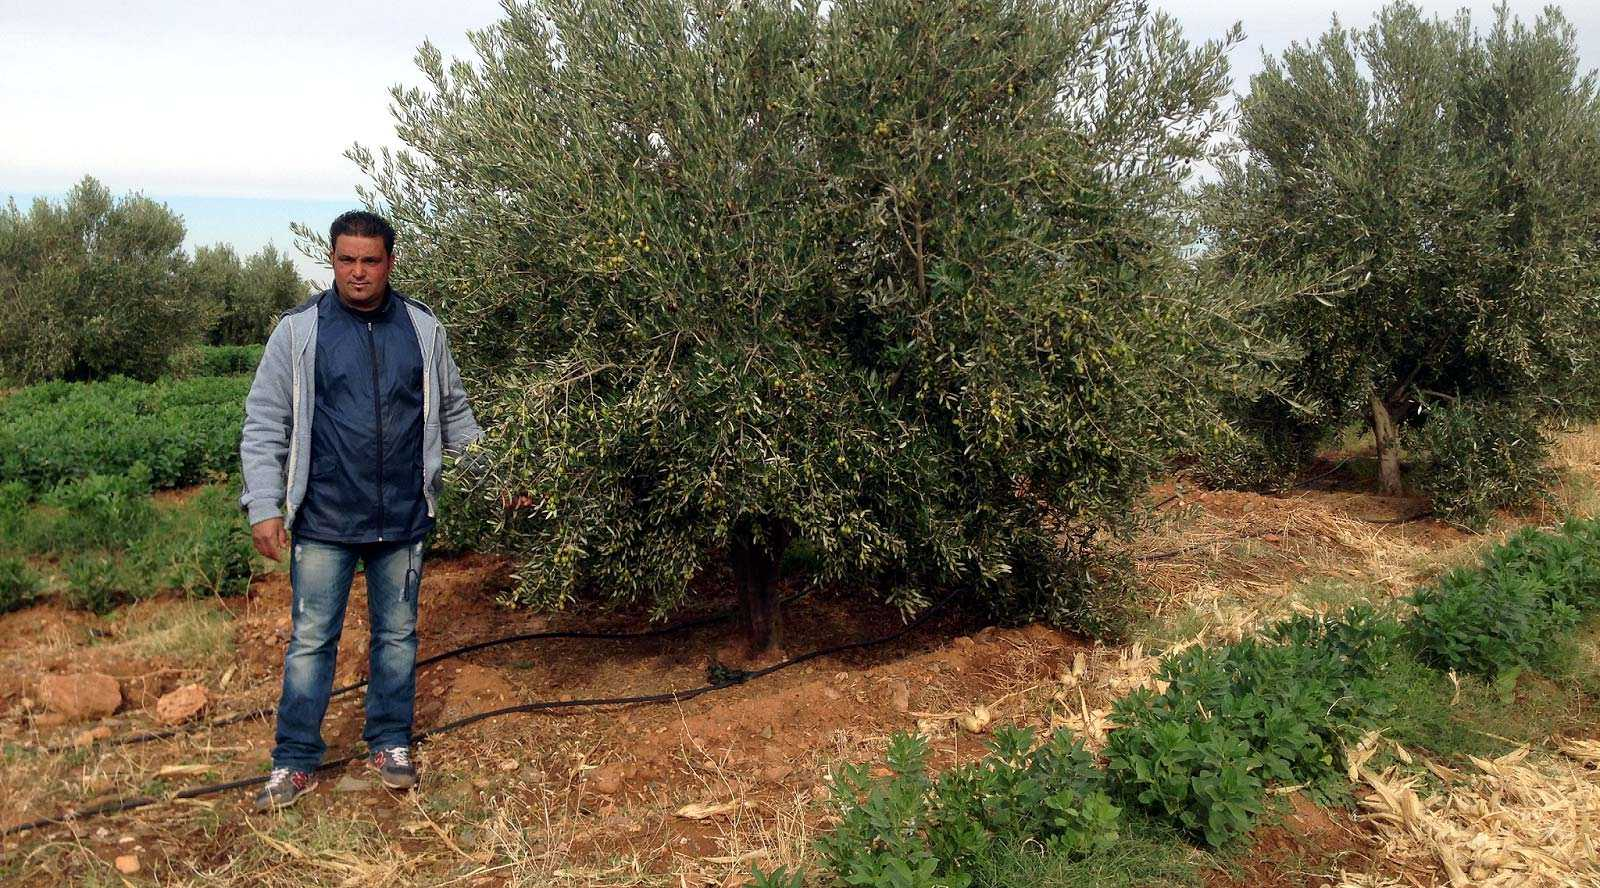 moroccan-farmers-combat-climate-change-with-olive-trees-and-innovation